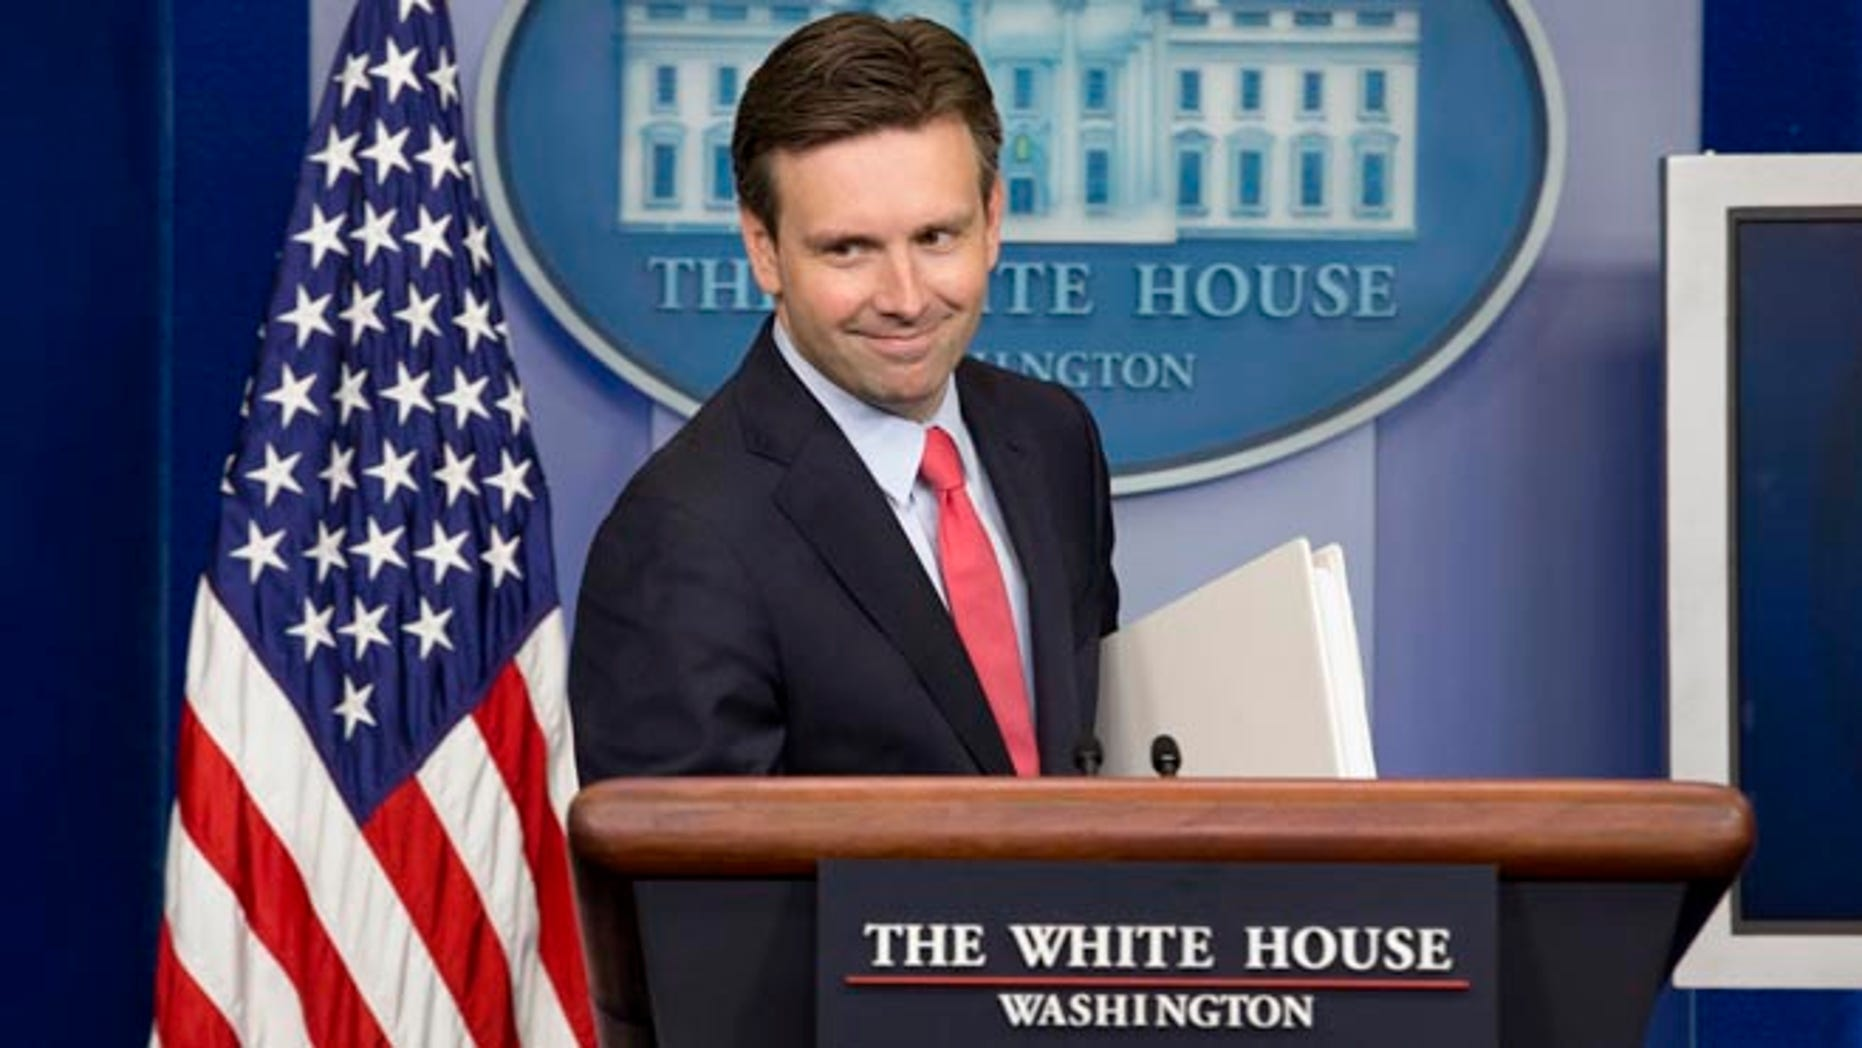 White House press secretary Josh Earnest, Monday, June 30, 2014, during the daily briefing in the Brady Press Briefing Room of the White House in Washington.